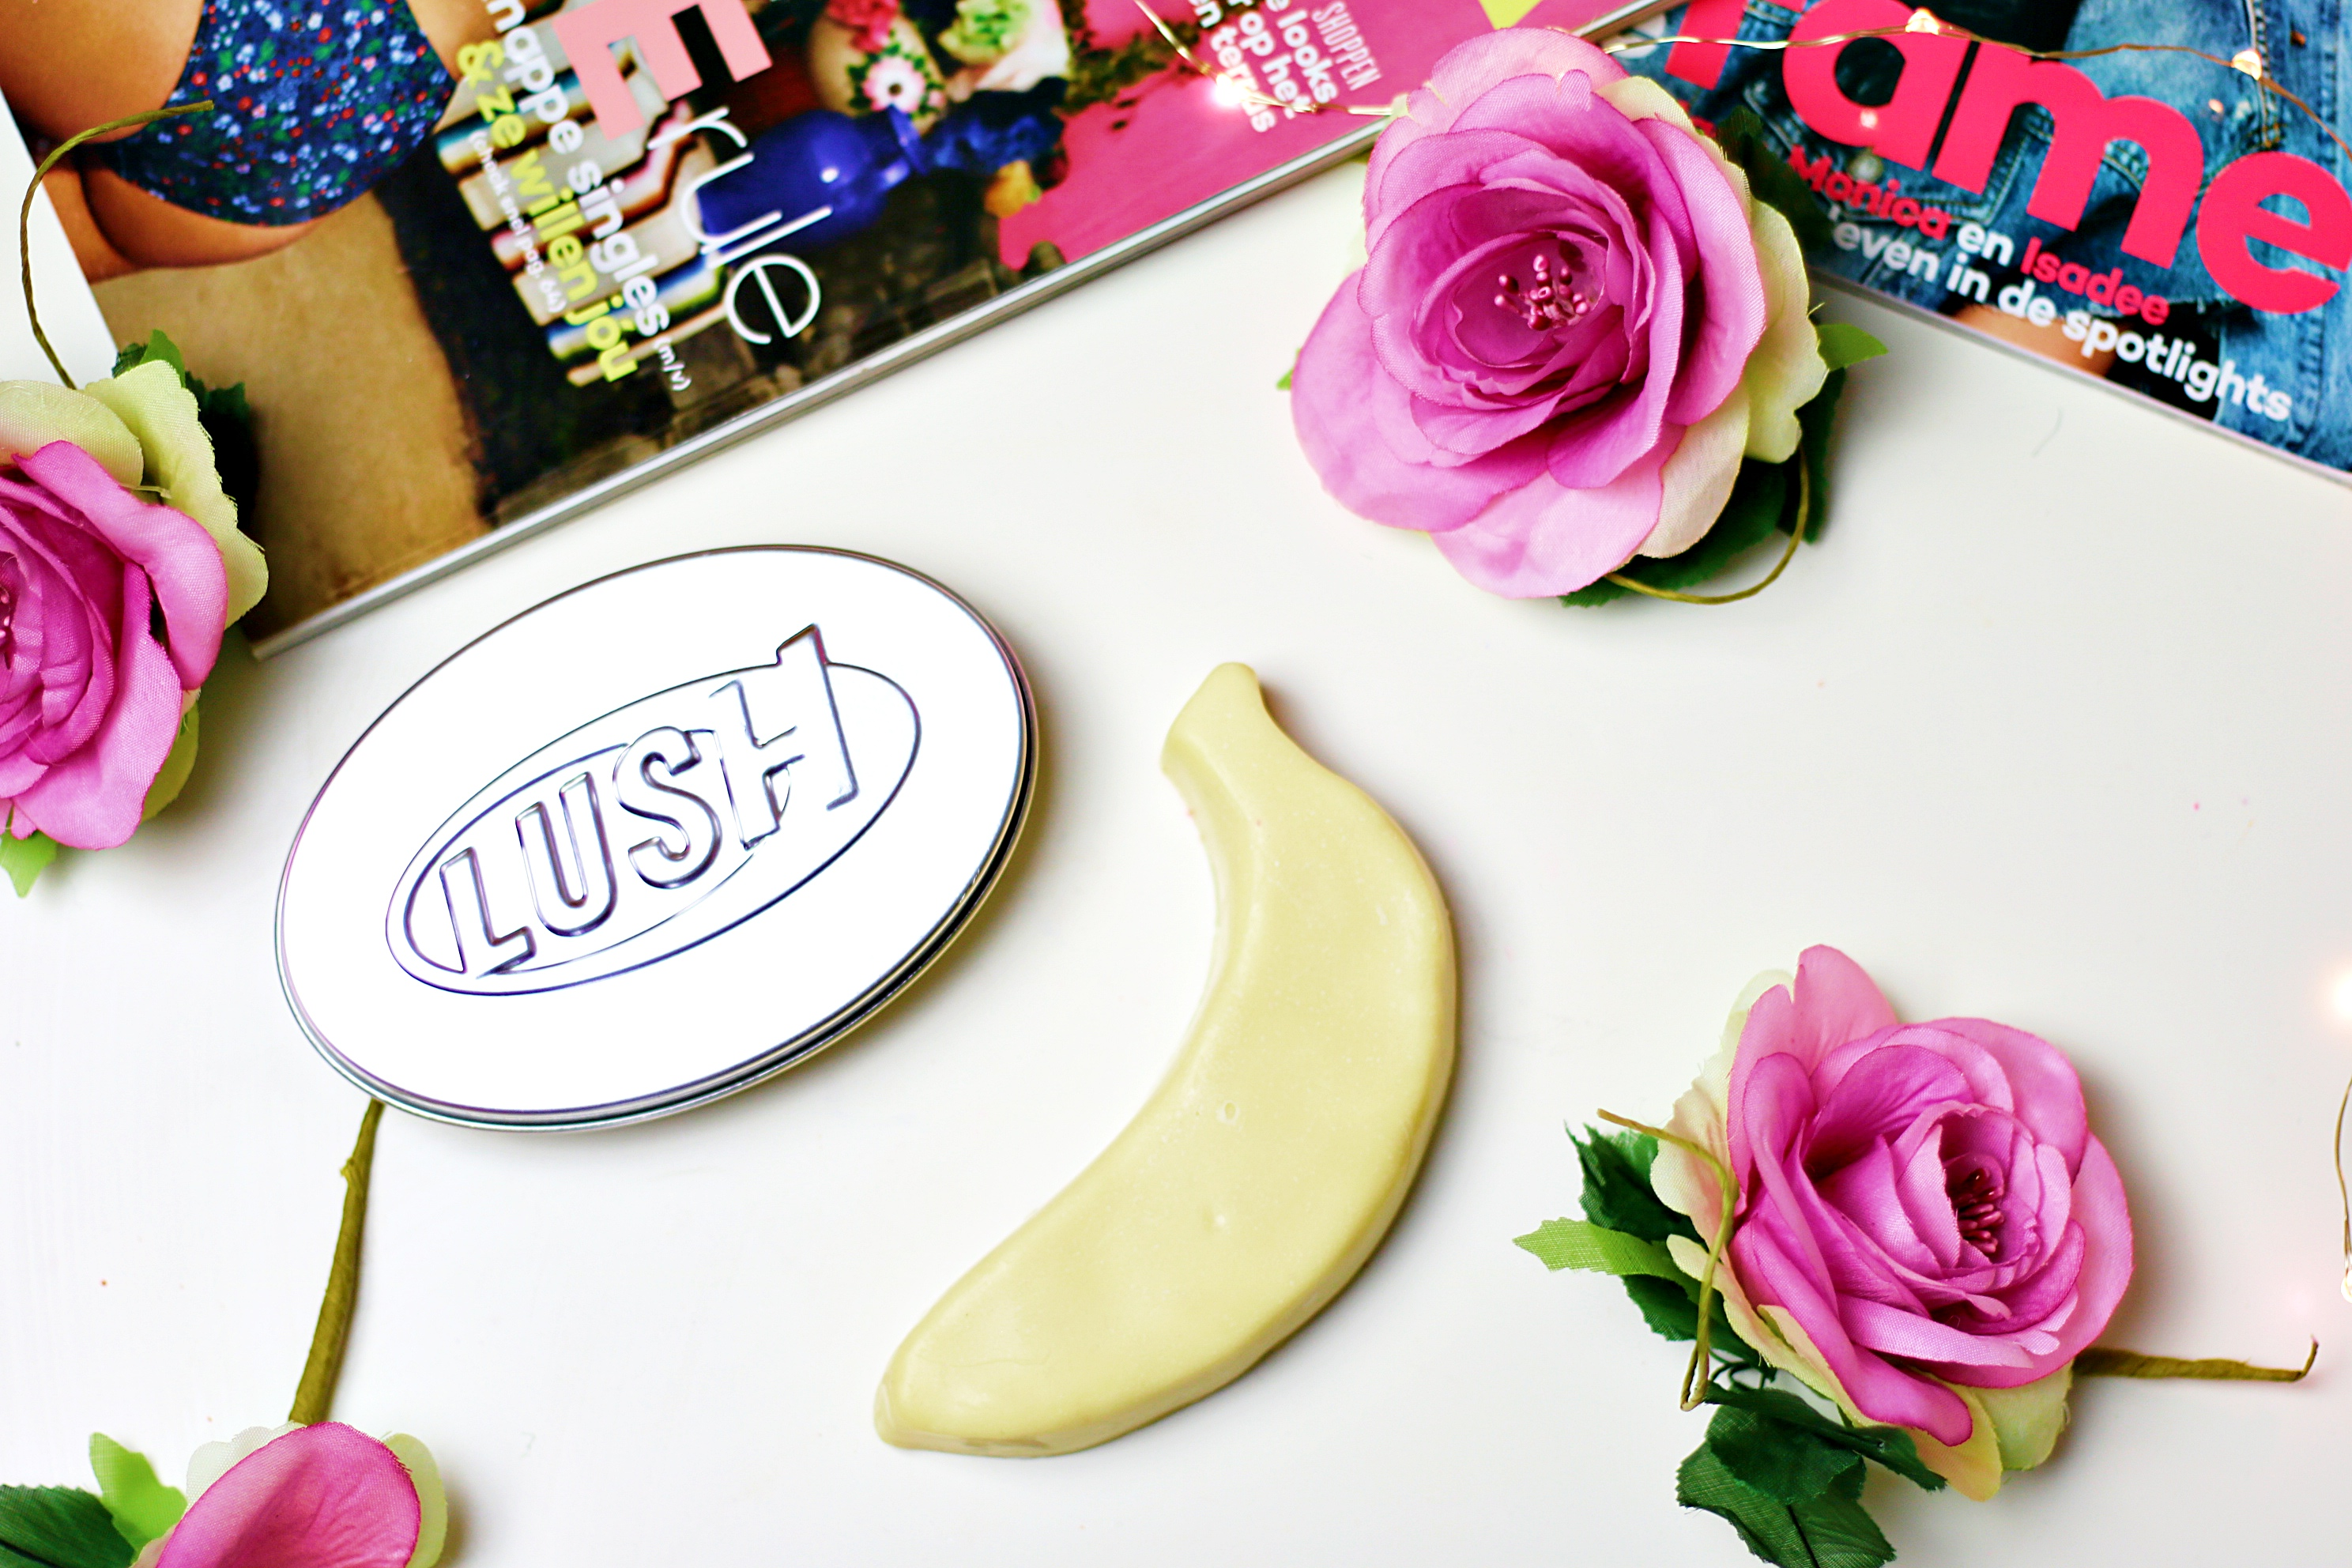 Lush The Big Banana Massage Bar